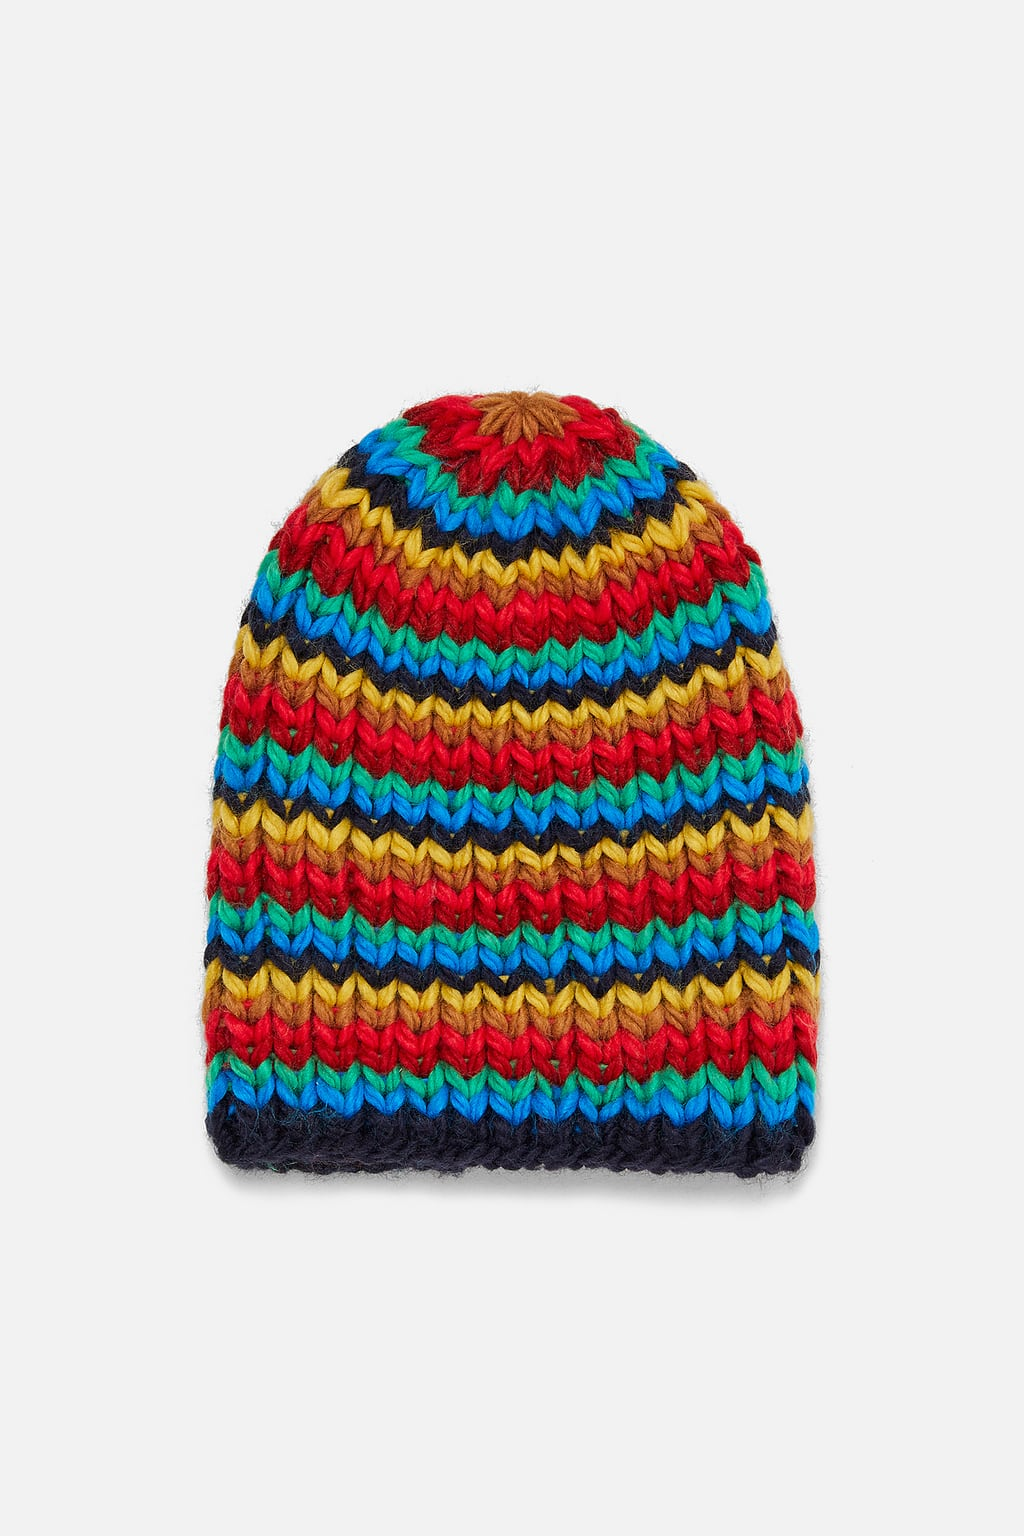 beb6e4fb 20 Hats To See You Through Winter In Style